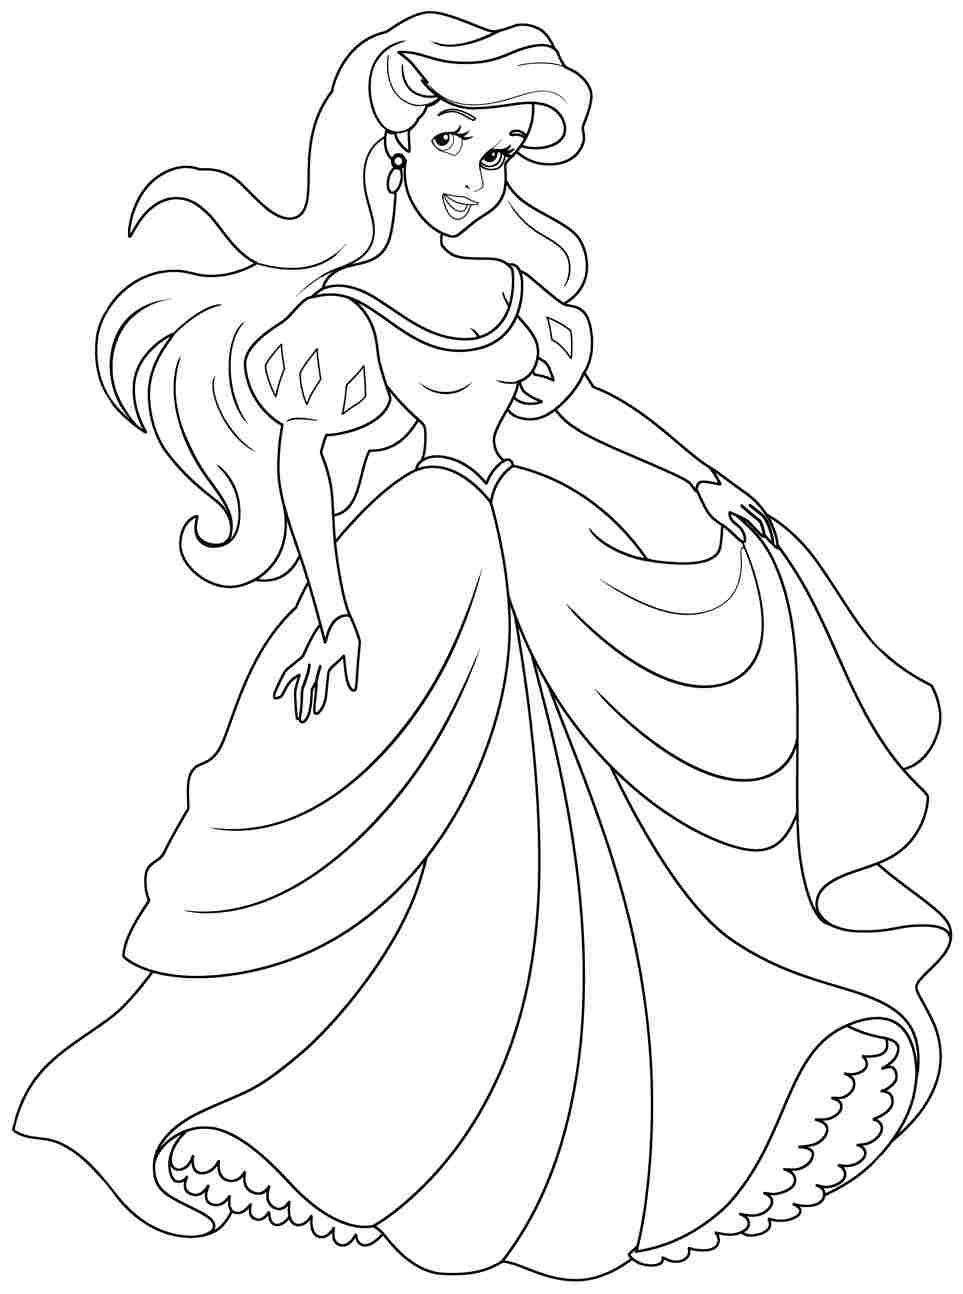 Disney lab rats coloring pages - Coloring Pages Disney Princess Ariel